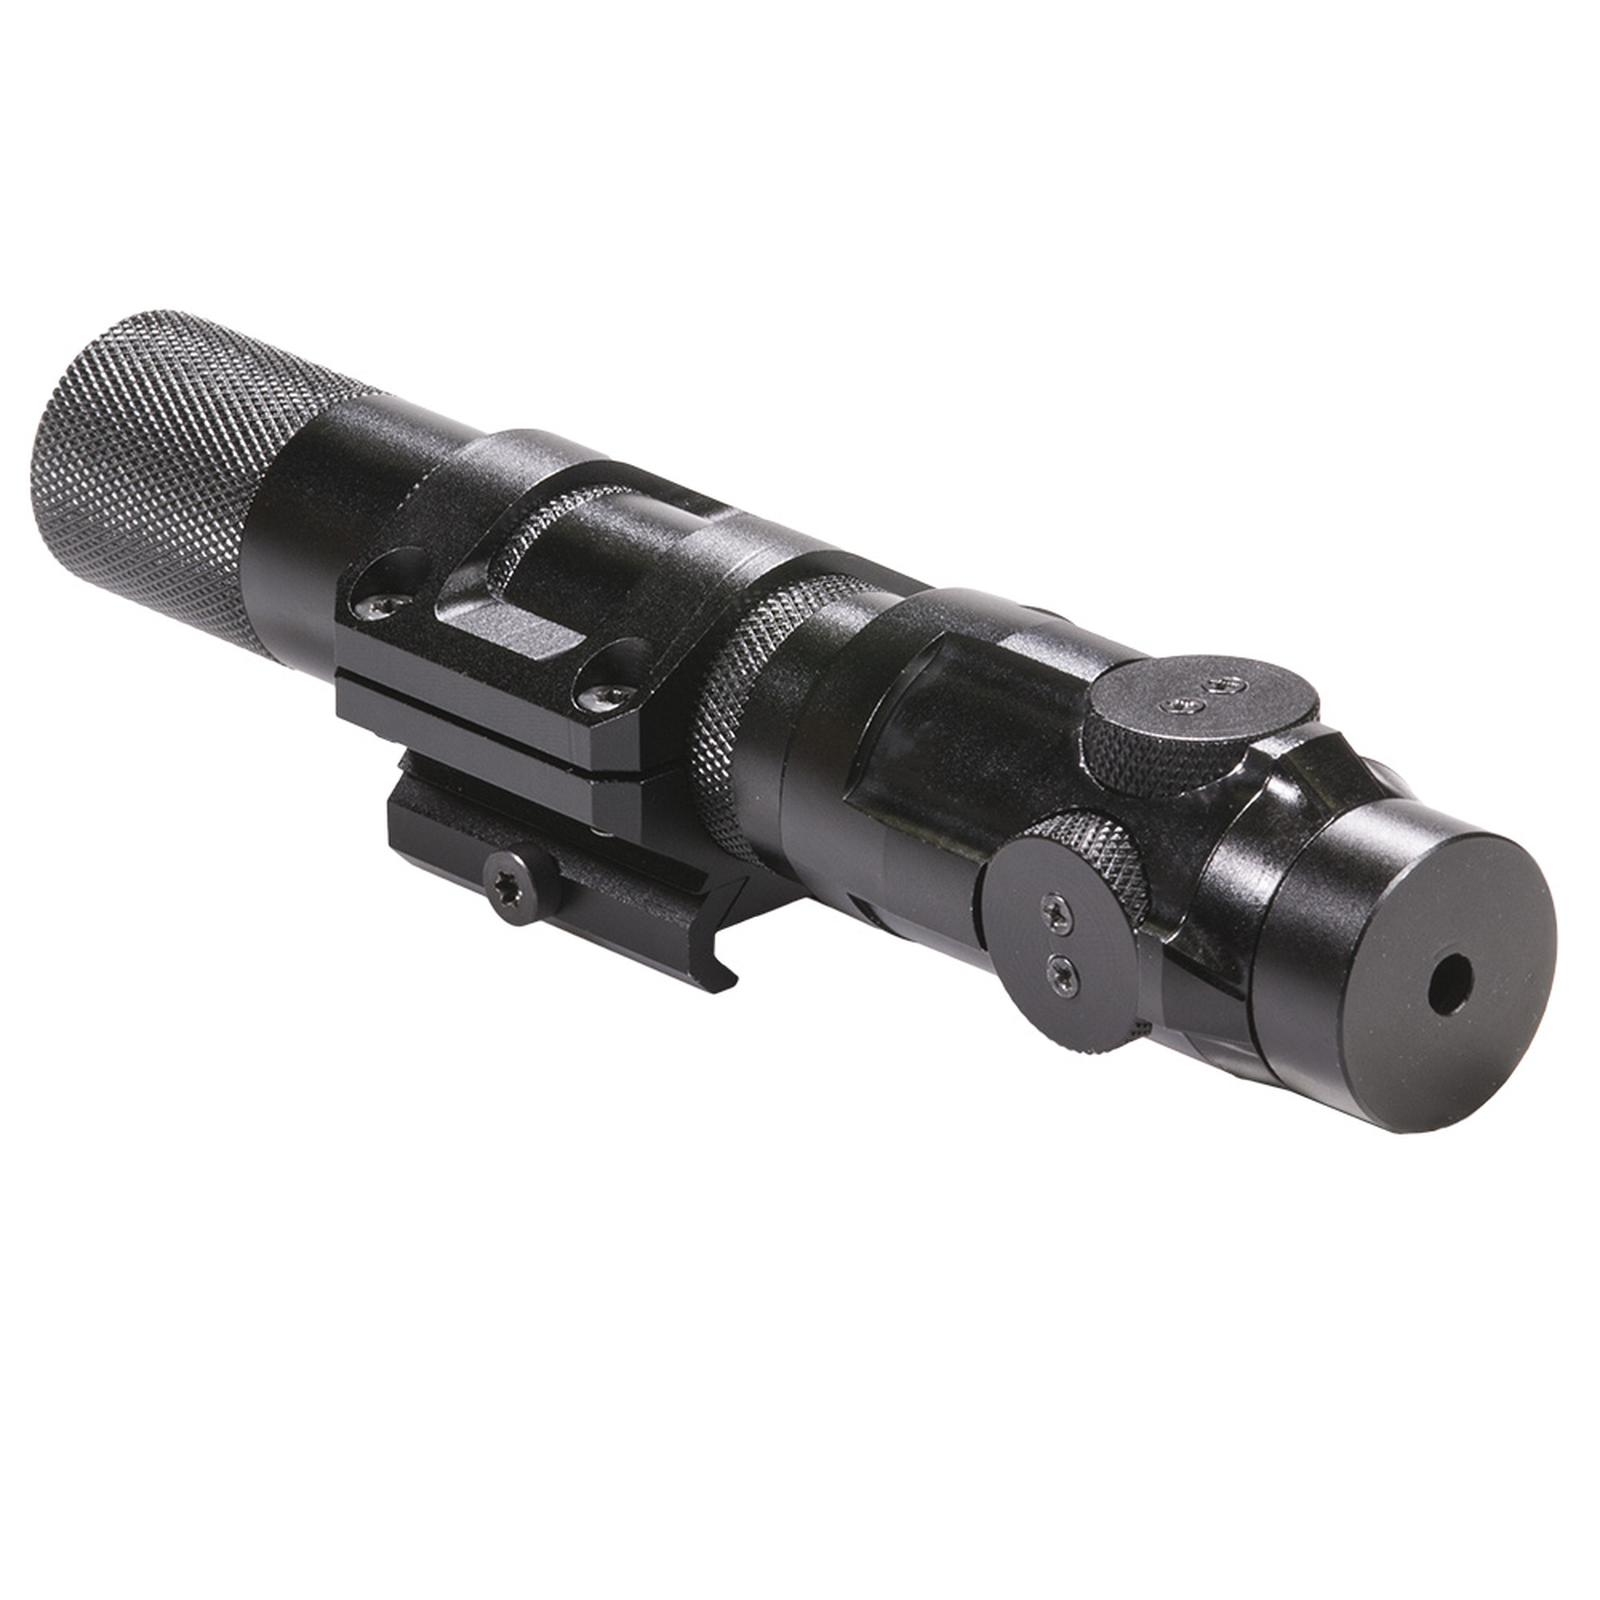 Sightmark ReadyFire IR6 Infrared Laser Sight by Sightmark